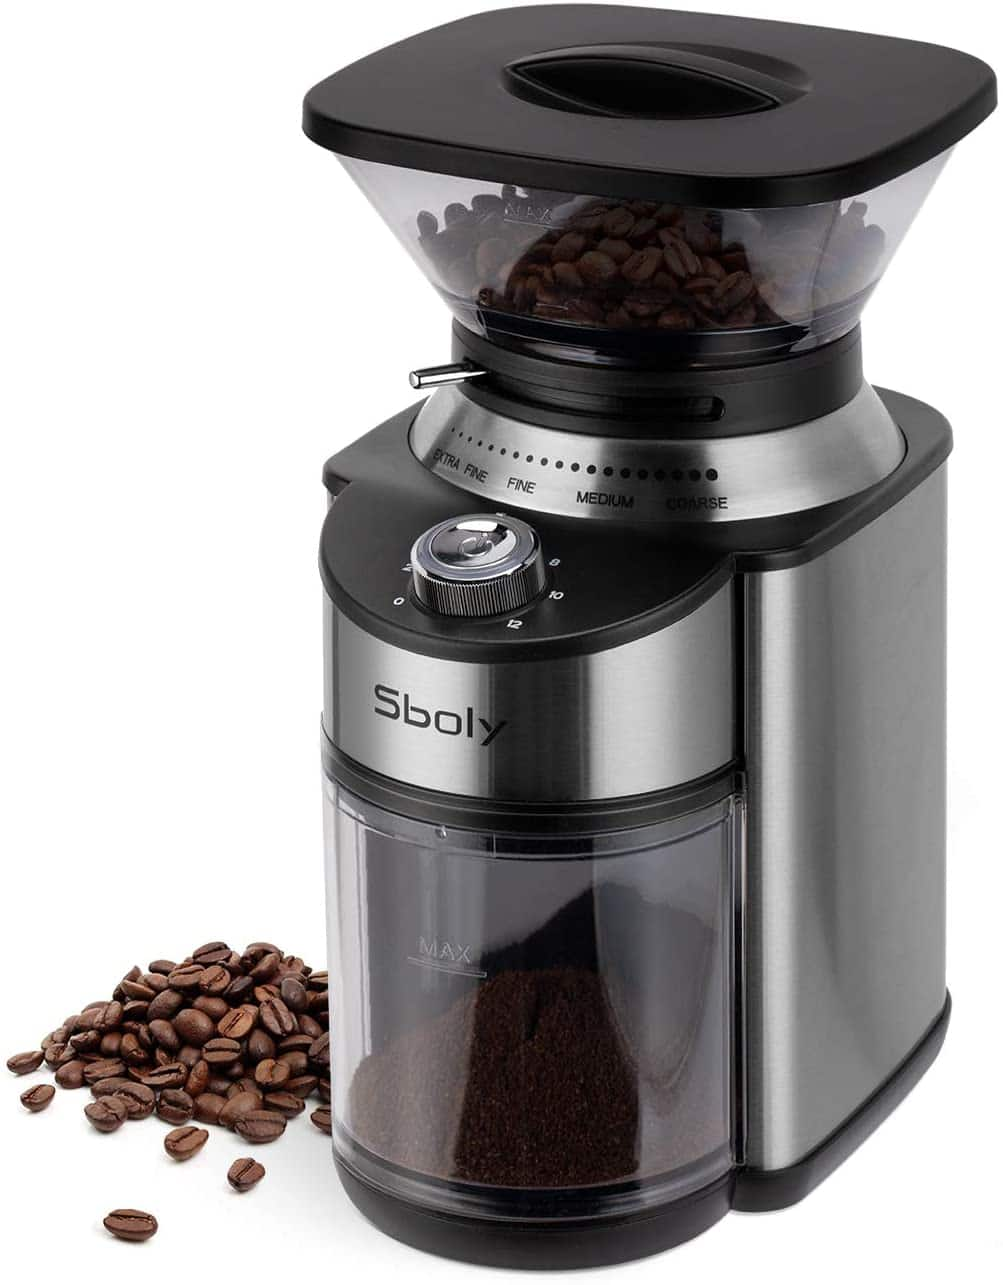 Sboly 40mm Stainless Steel Conical Burr Coffee Grinder, Stainless Steel Adjustable Burr Grinder, $49.99 with Prime